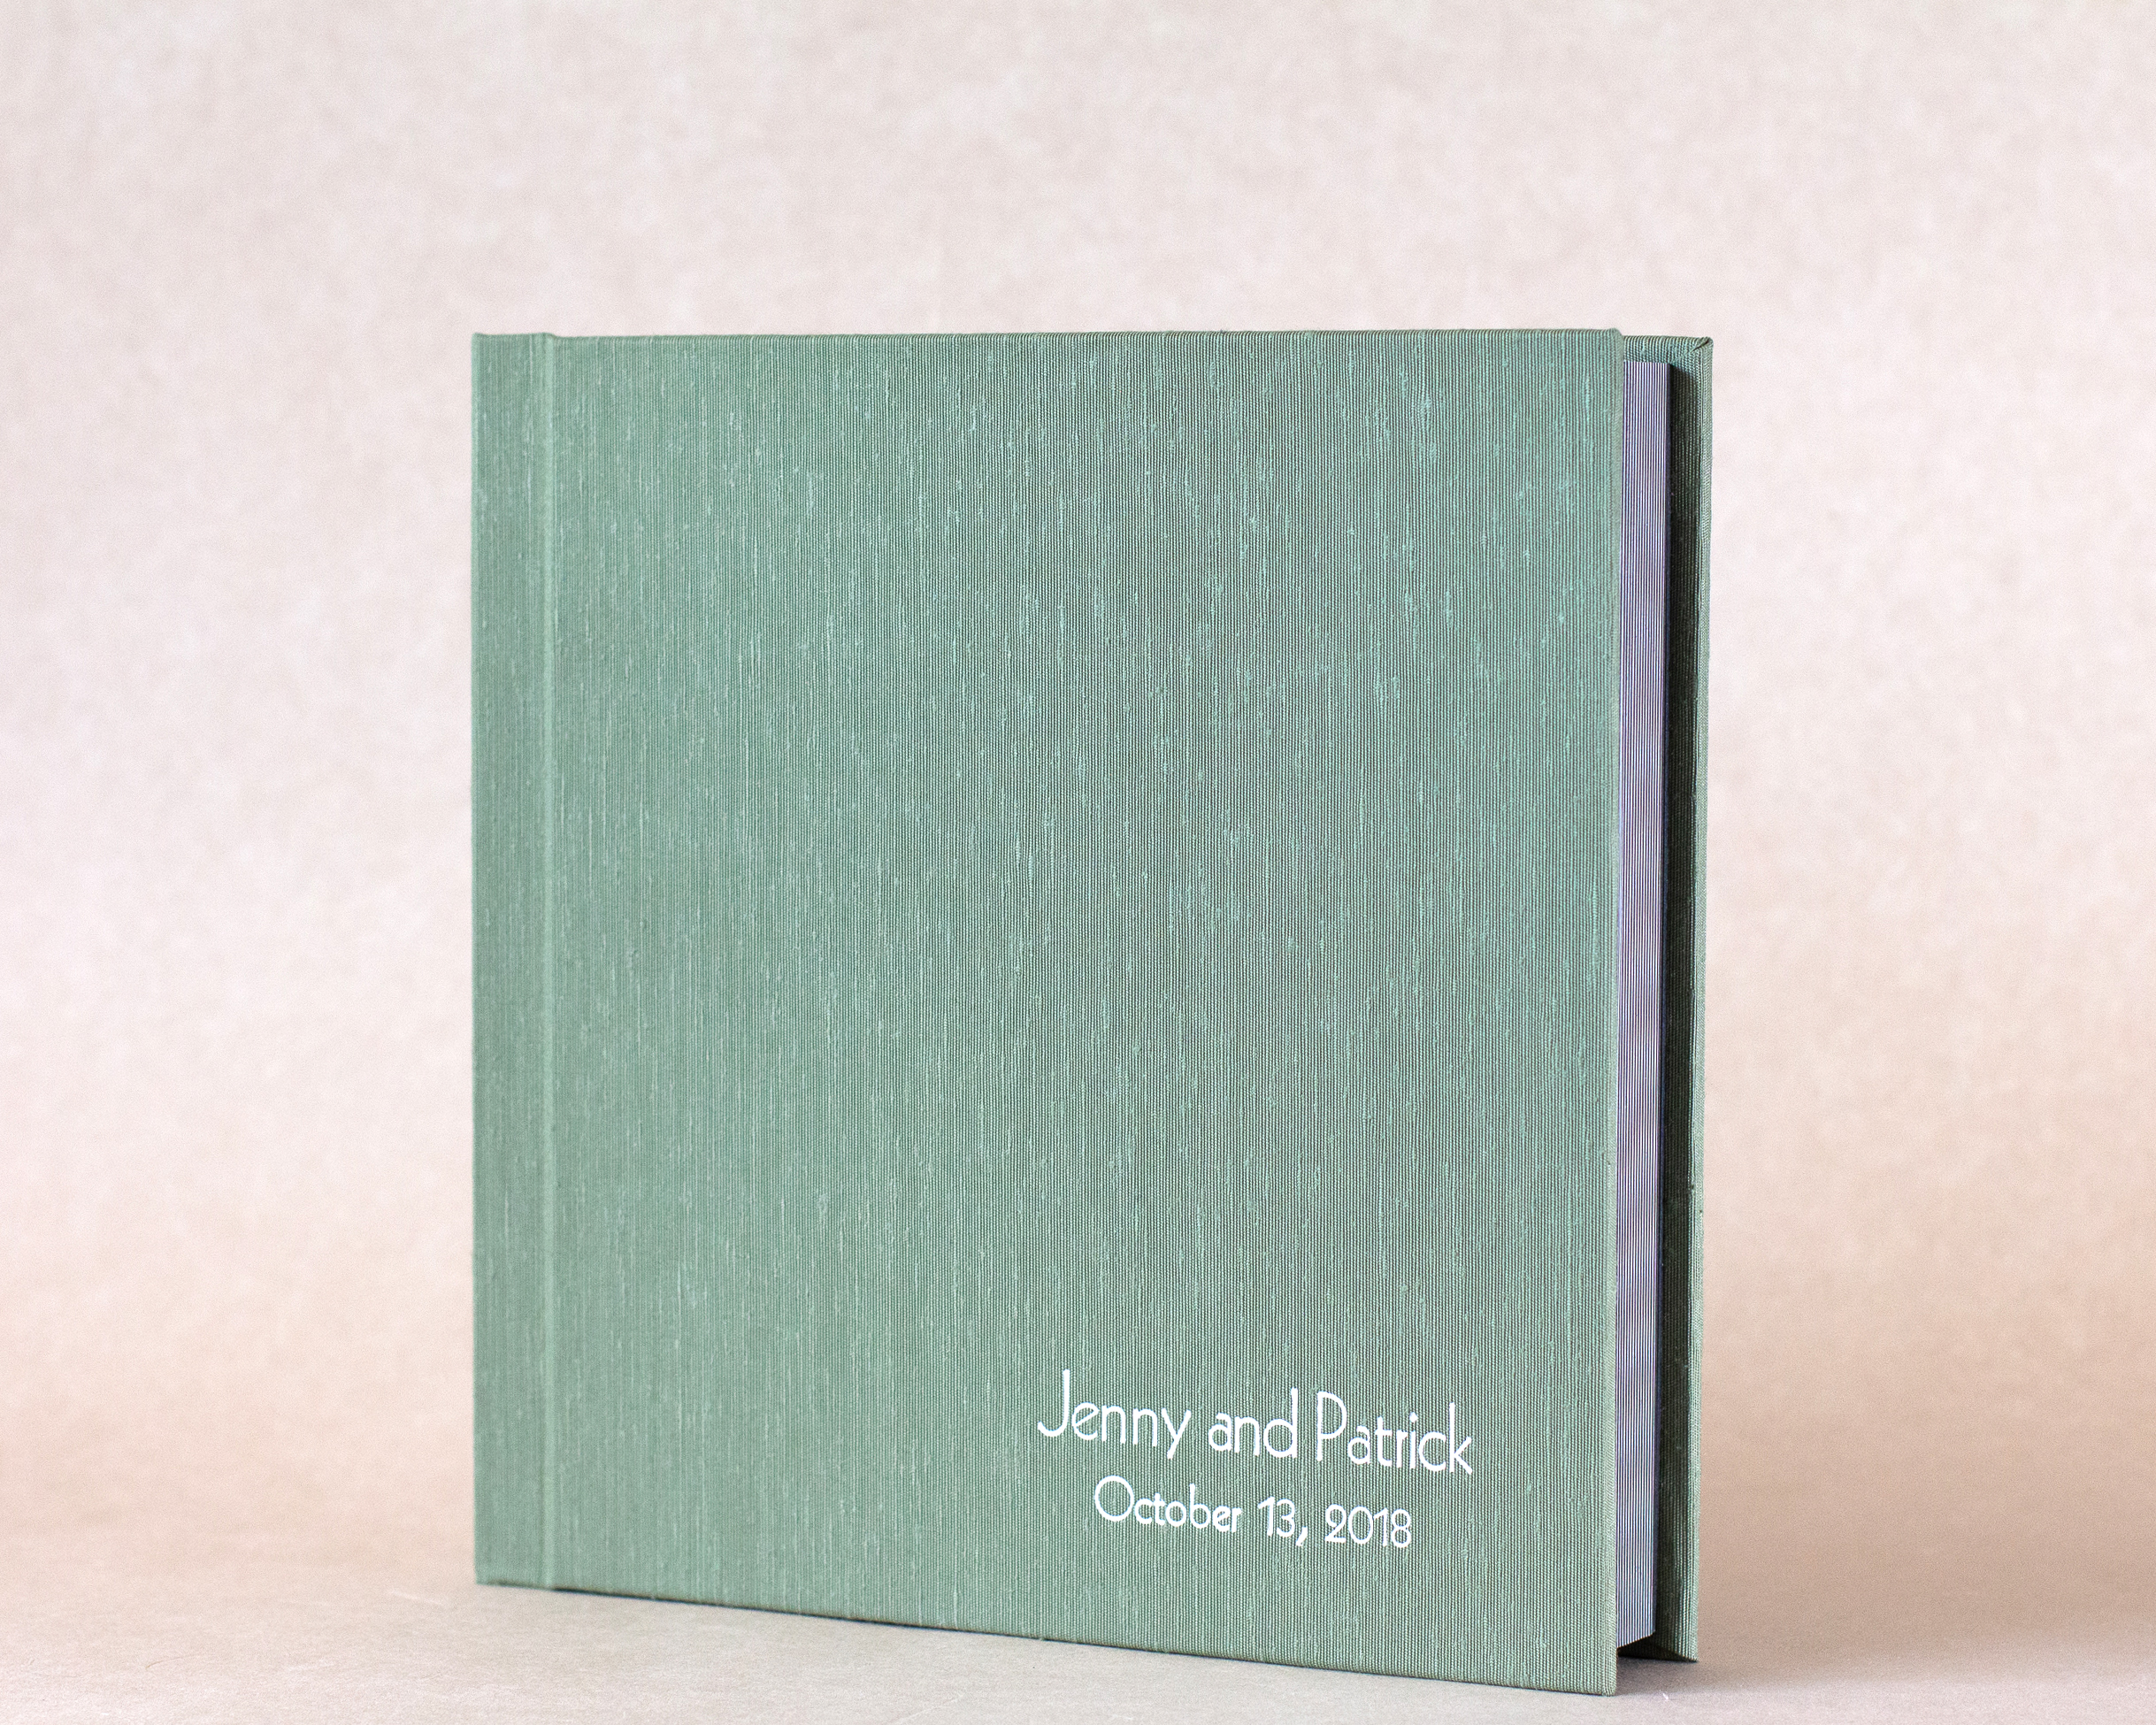 Sage Japanese Book Cloth with White Foil Imprinting